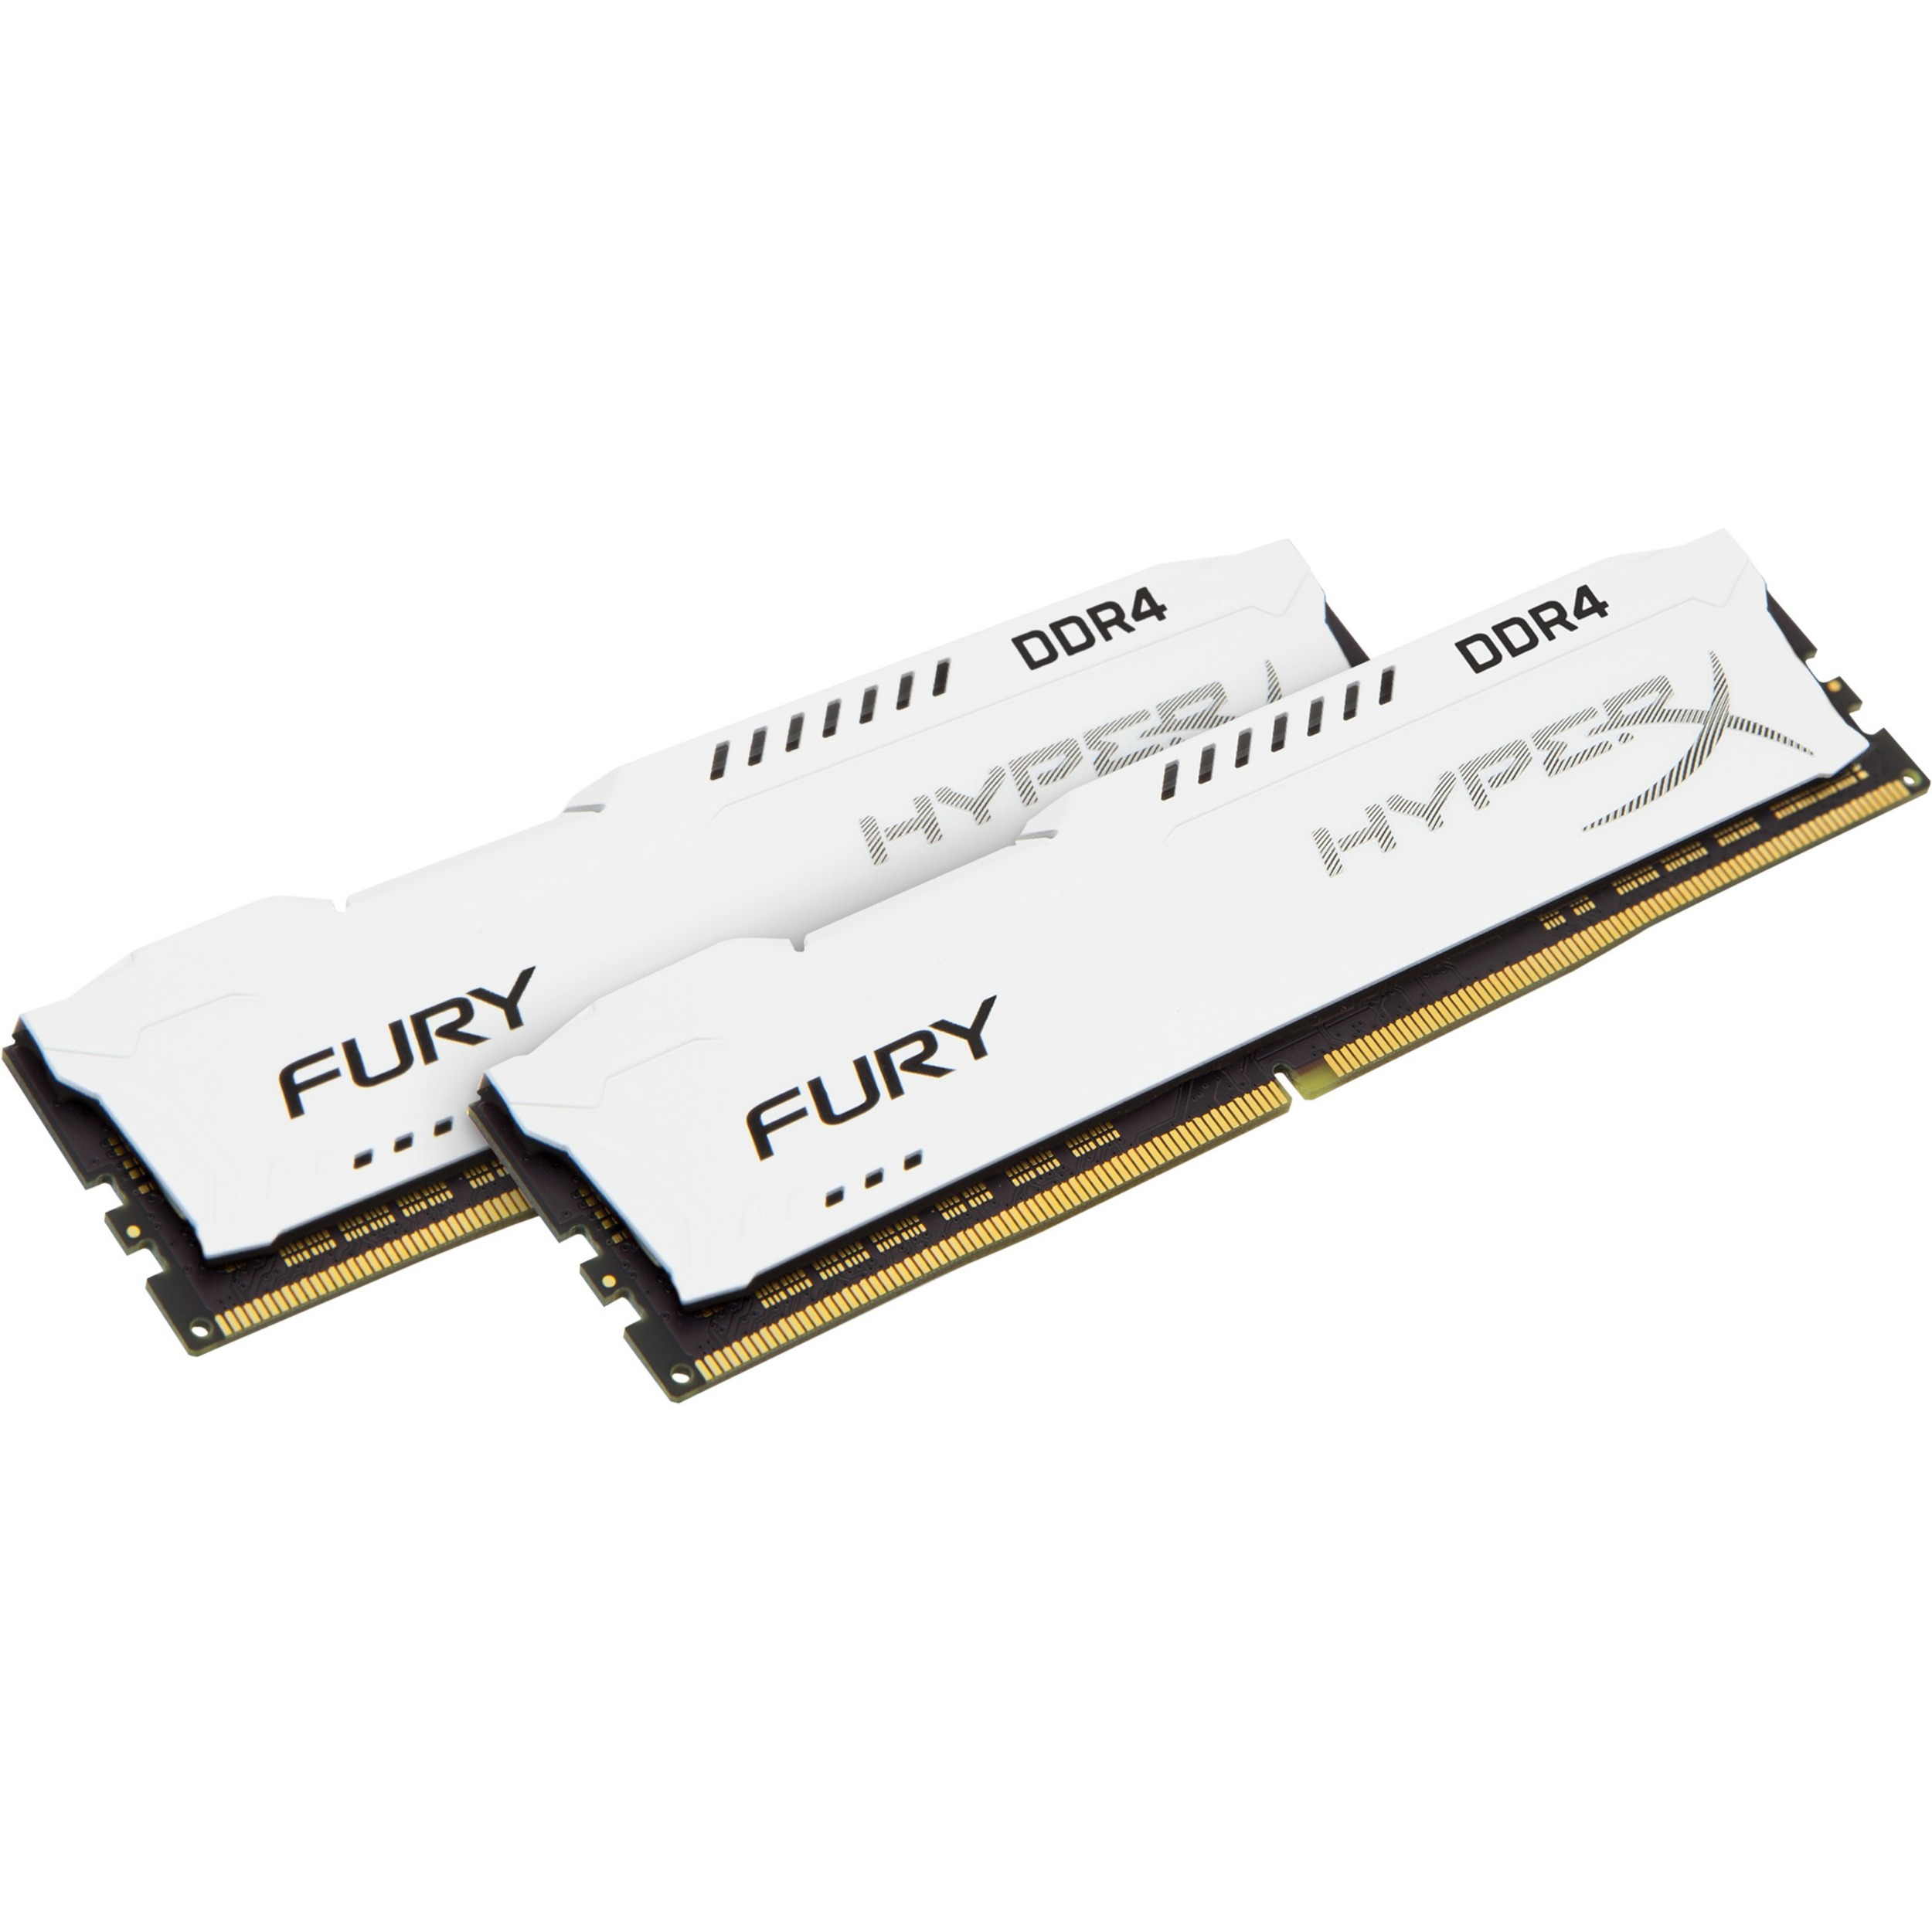 Kingston HyperX Fury RAM Module - 16 GB 2 x 8 GB - DDR4 SDRAM - 2133 MHz - 1.20 V - Non-ECC - Unbuffered - CL14 - 288-pin - DIMM